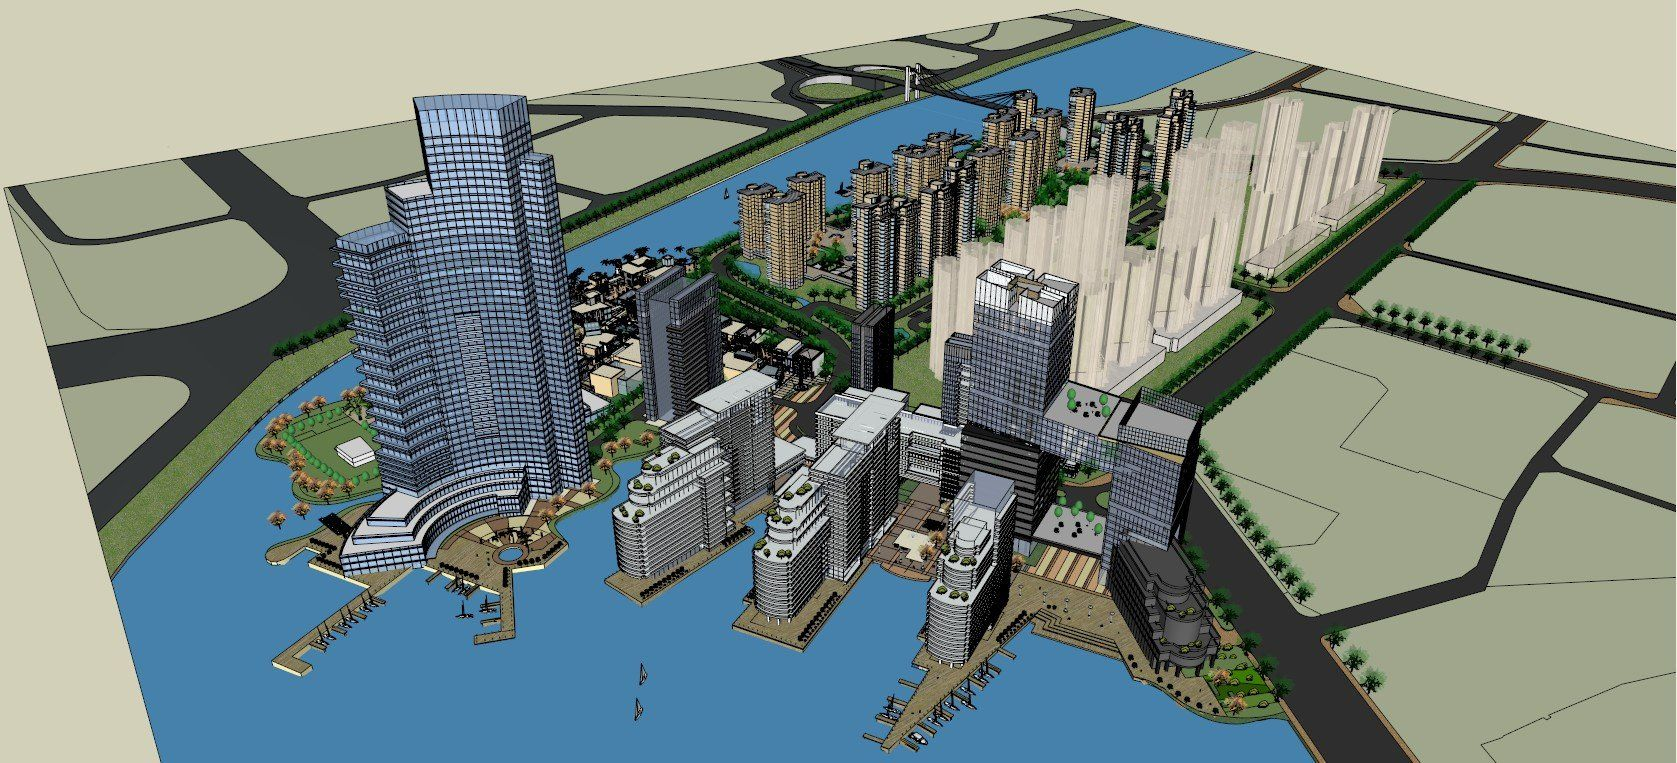 ☆Sketchup 3D Models-Large Scale City Sketchup Models